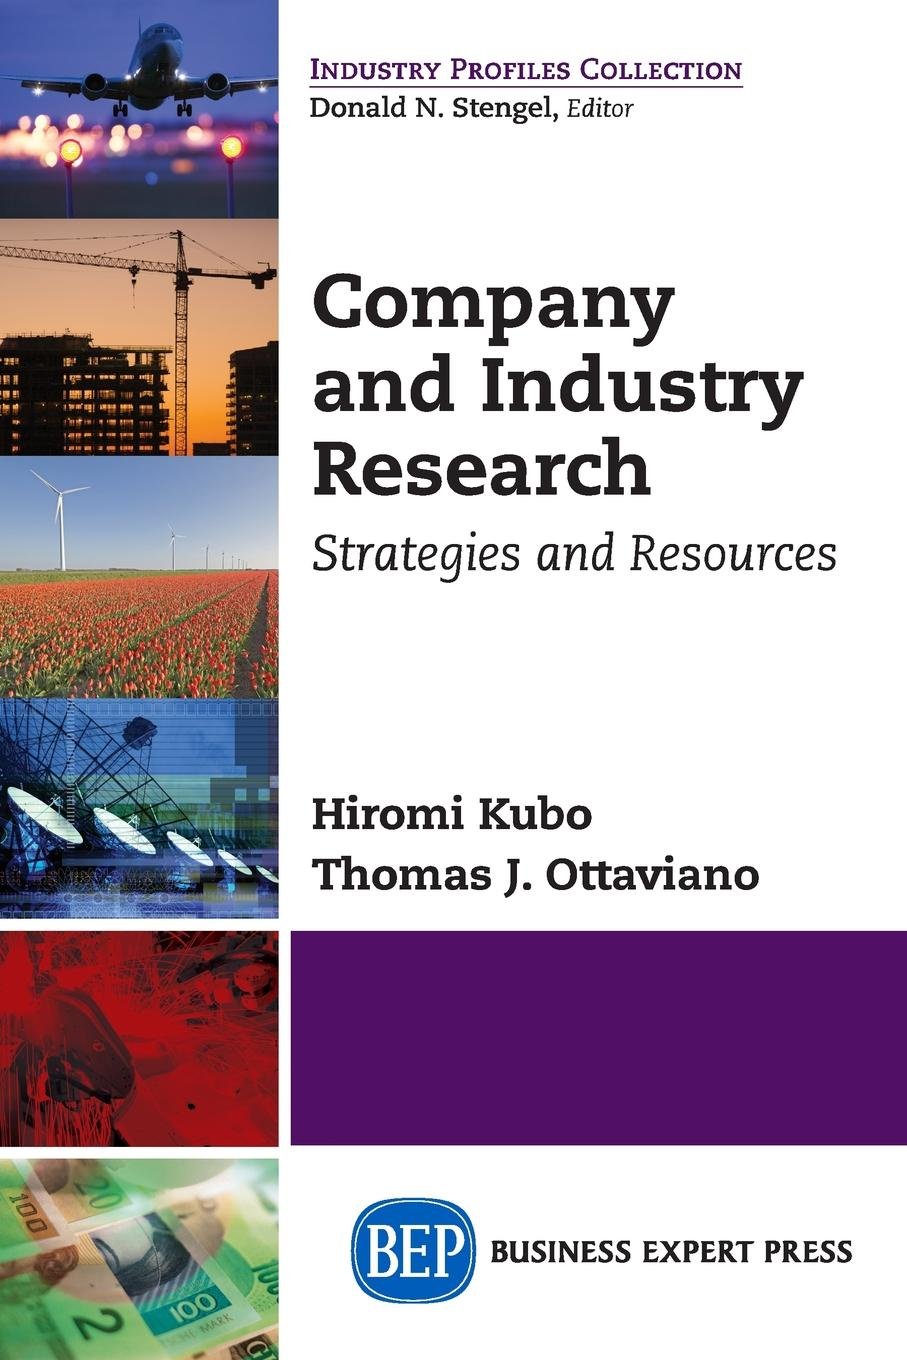 Hiromi Kubo, Thomas J. Ottaviano Company and Industry Research. Strategies and Resources collaboration among data sources for information retrieval